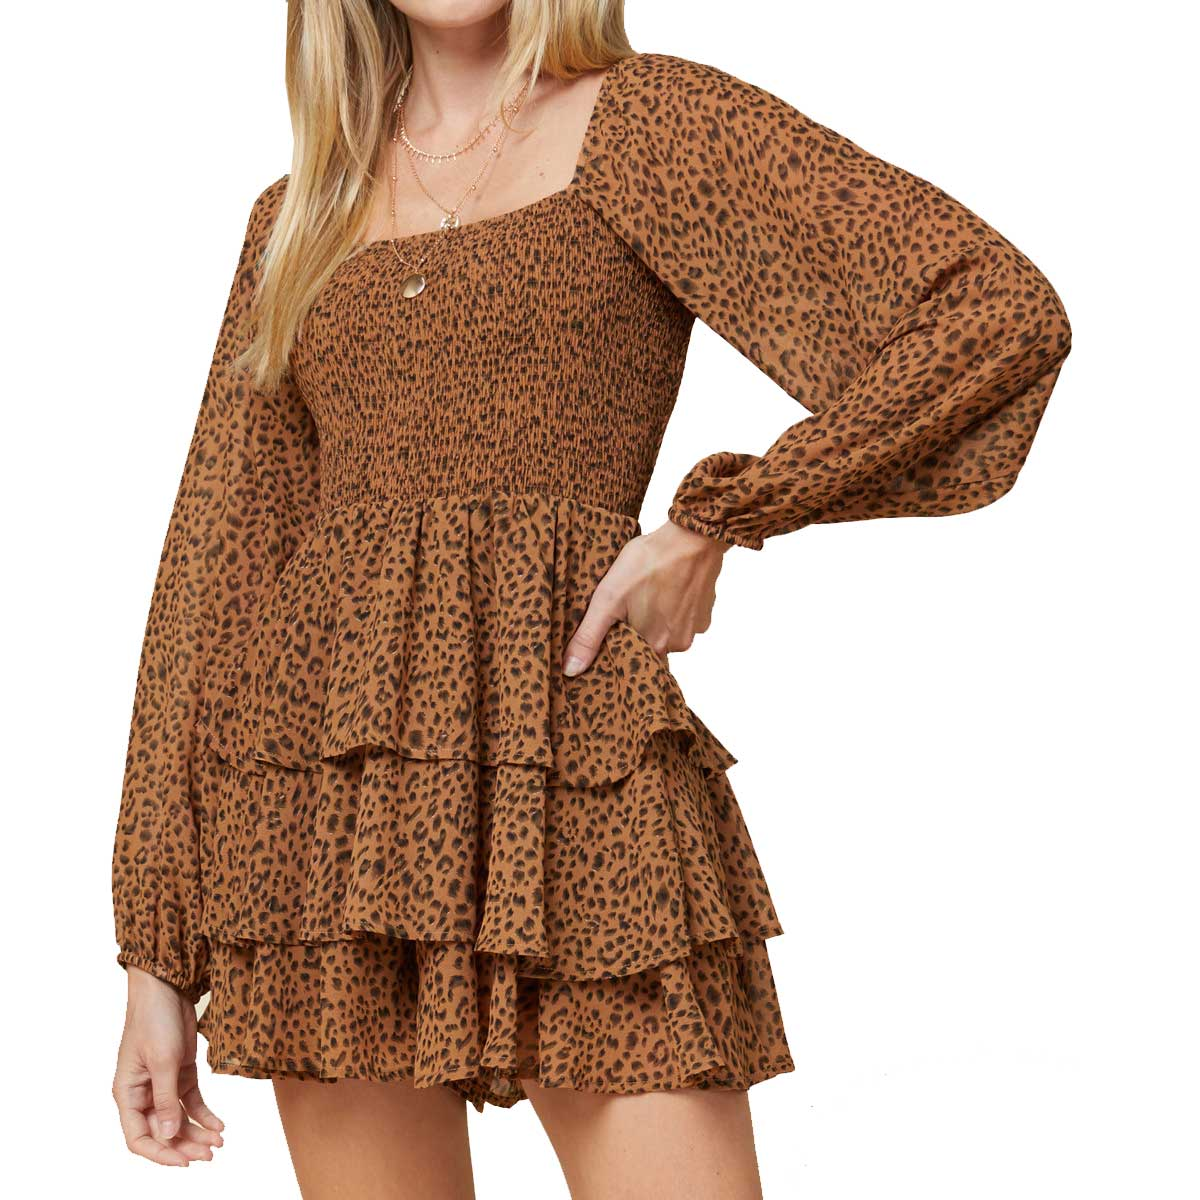 Entro Open Shoulder Ruffle Romper - Brown Leopard